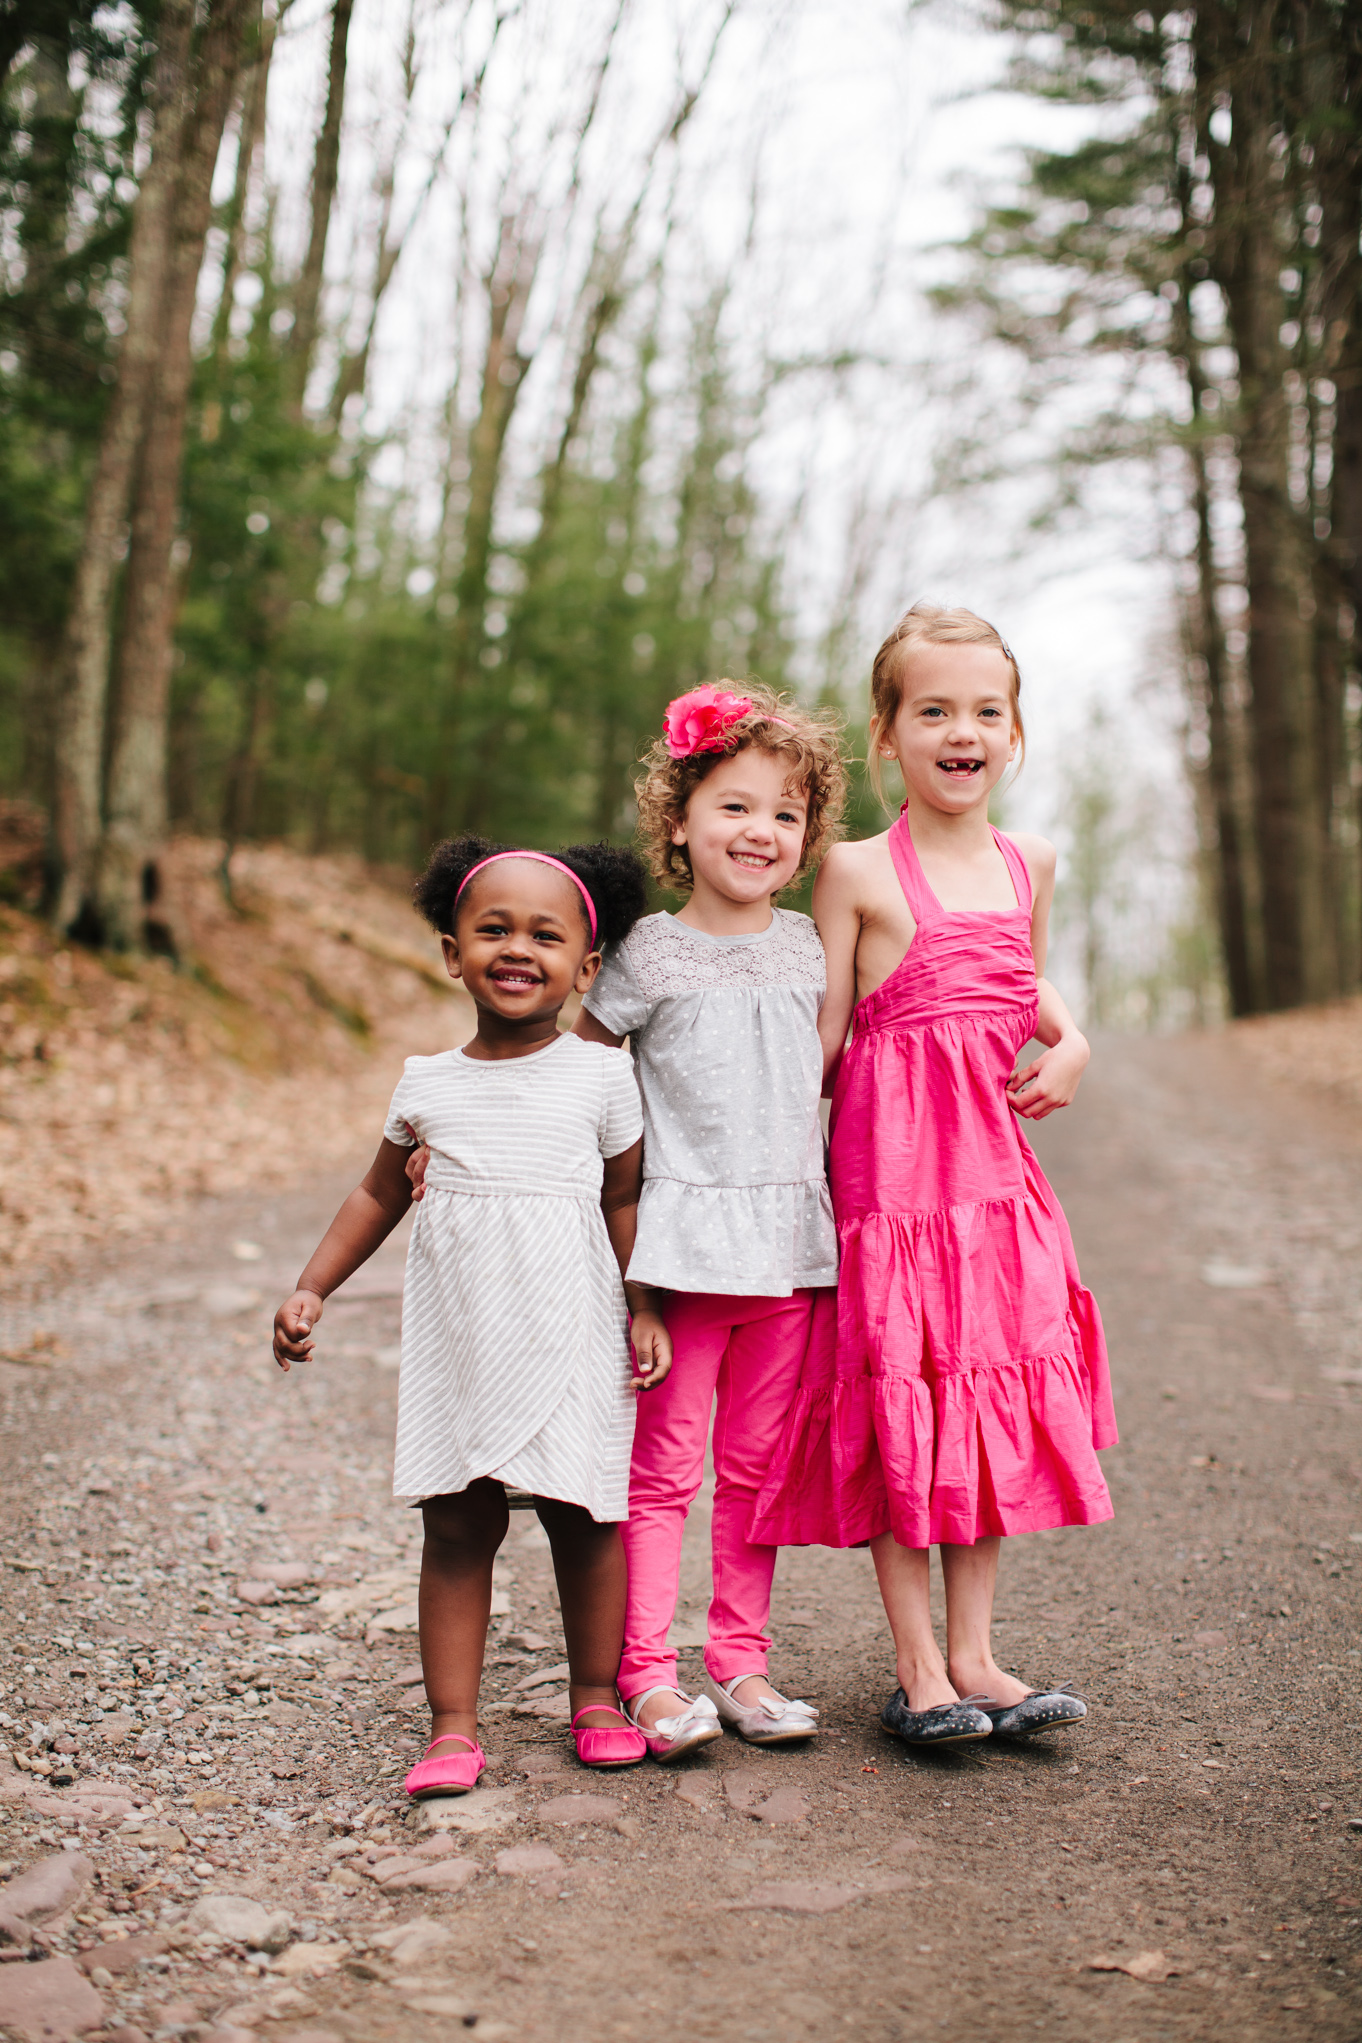 conroy_family_tierney_cyanne_photography_blog_3757.jpg